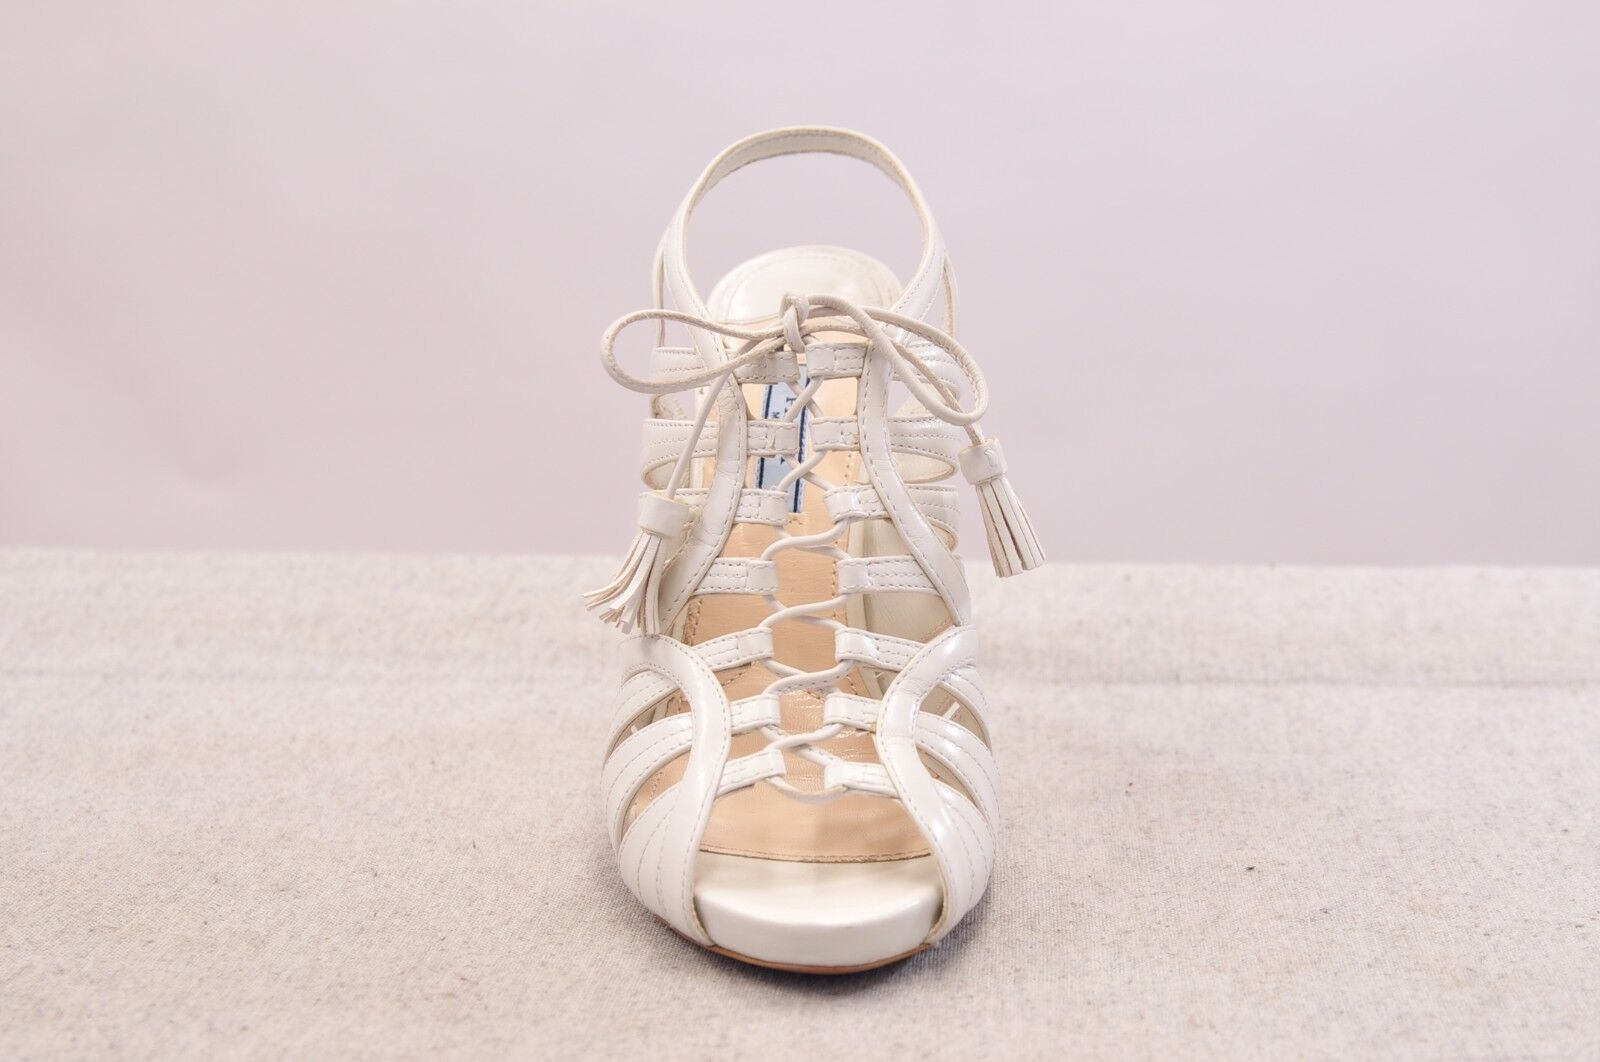 NIB PRADA CALZ DONNA Weiß LEATHER MADE CAGE HEELS OPEN TOE MADE LEATHER IN ITALY cc264e